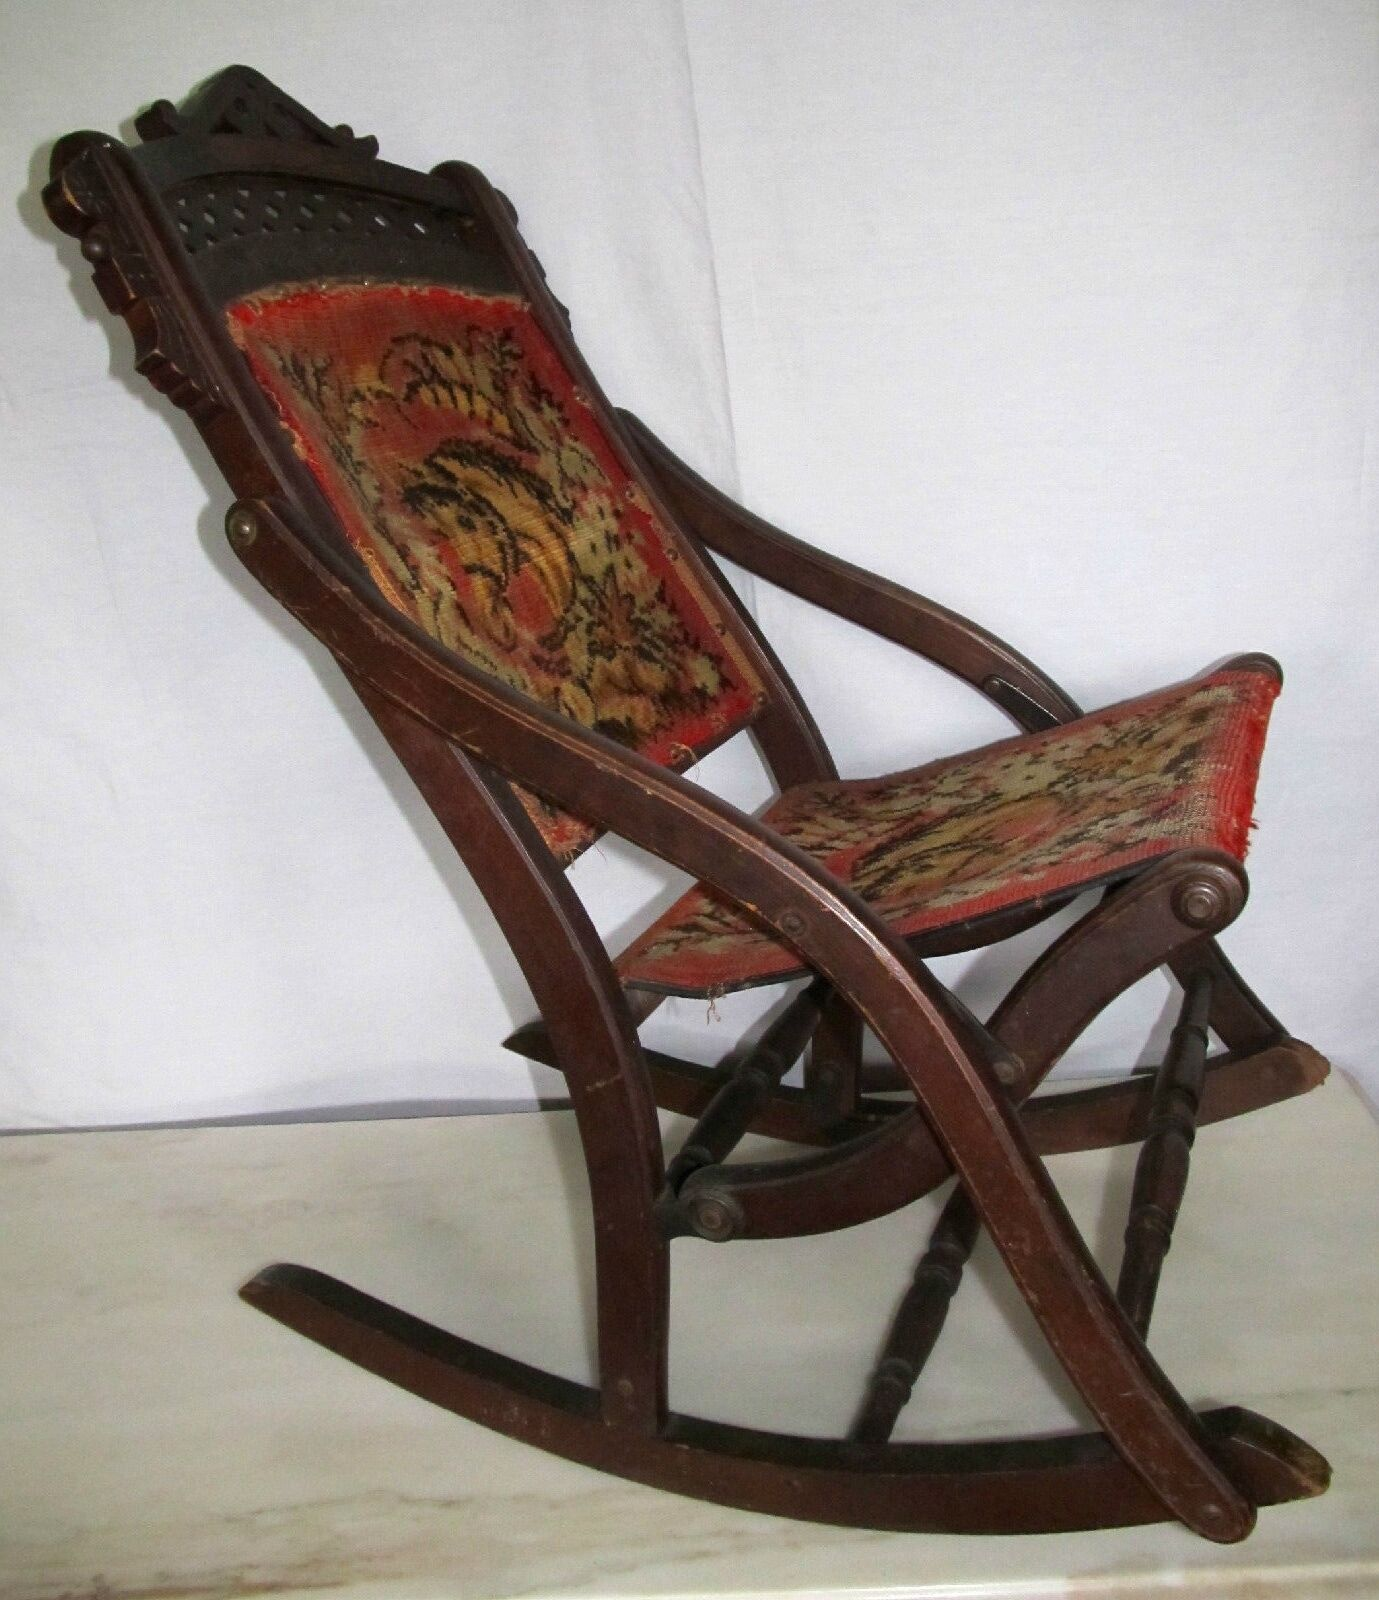 Antique Victorian Eastlake Folding Carpet Rocker Rocking Chair - Horses 1  of 12Only 1 available ... - REDUCED! ANTIQUE VICTORIAN Eastlake Folding Carpet Rocker Rocking